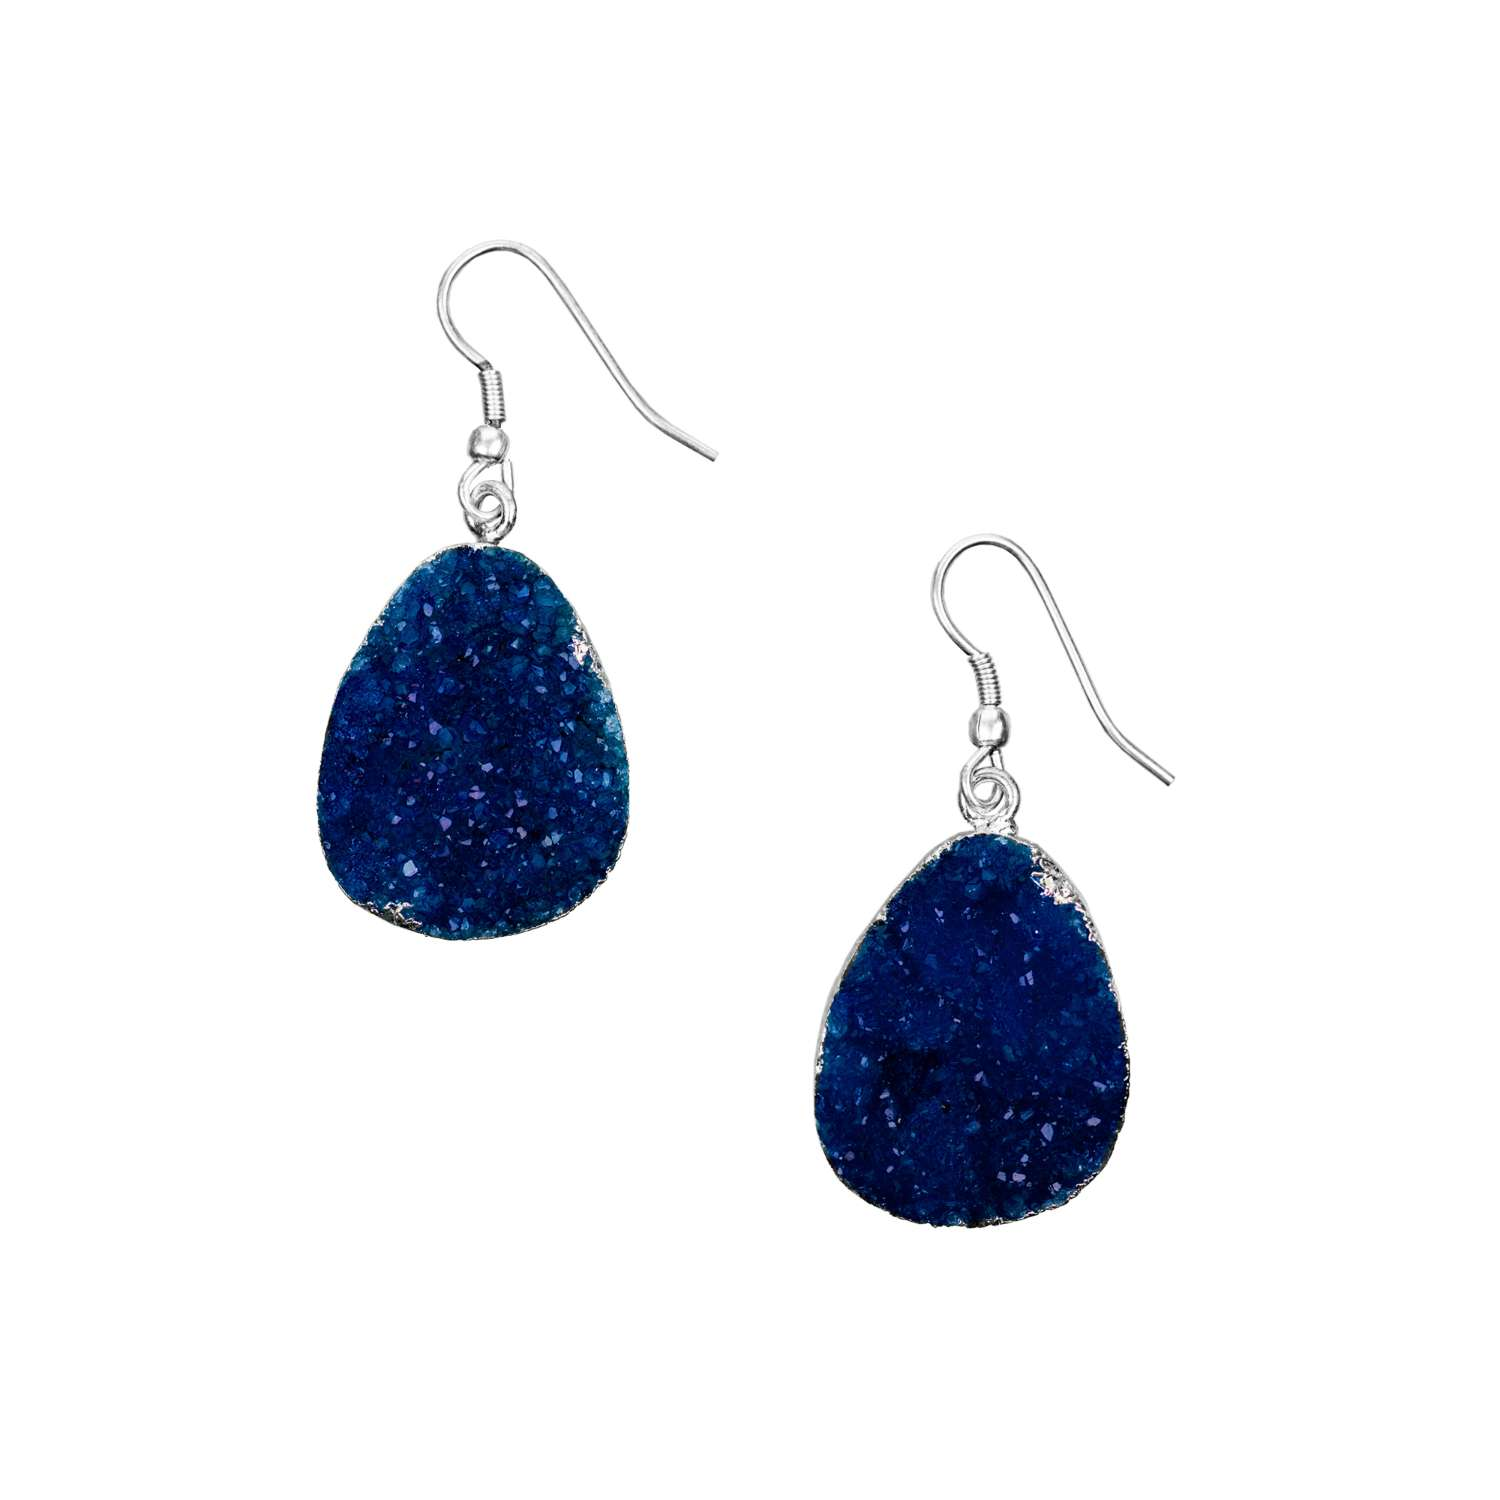 Rishima Druzy Drop Earrings - Dark Blue Silver